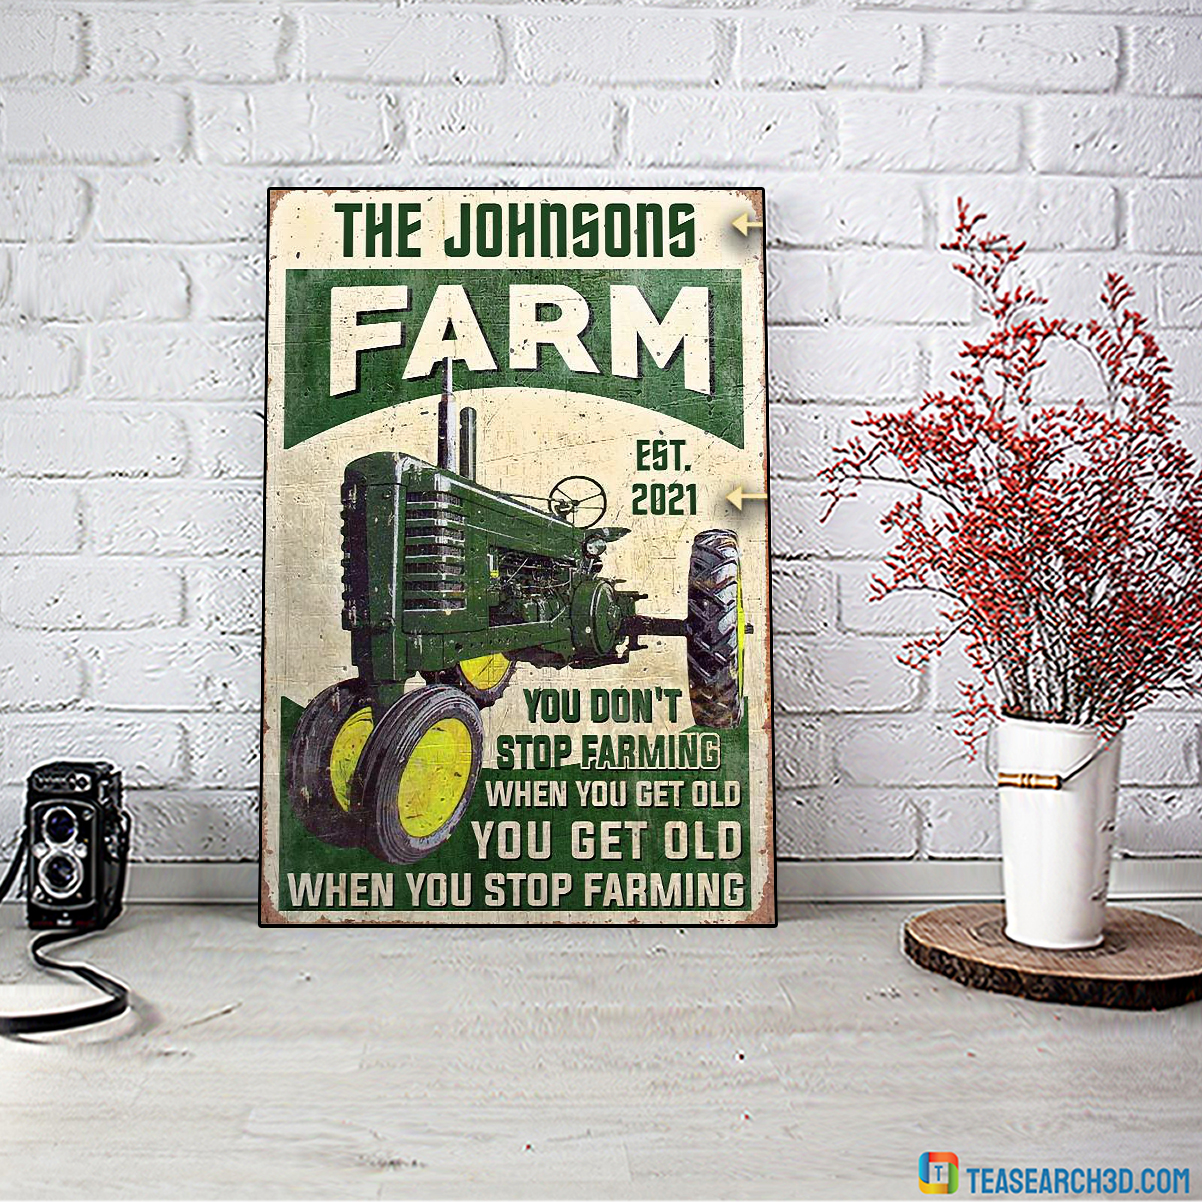 Personalized custom name Farm tractor you don't stop farming when you get old poster